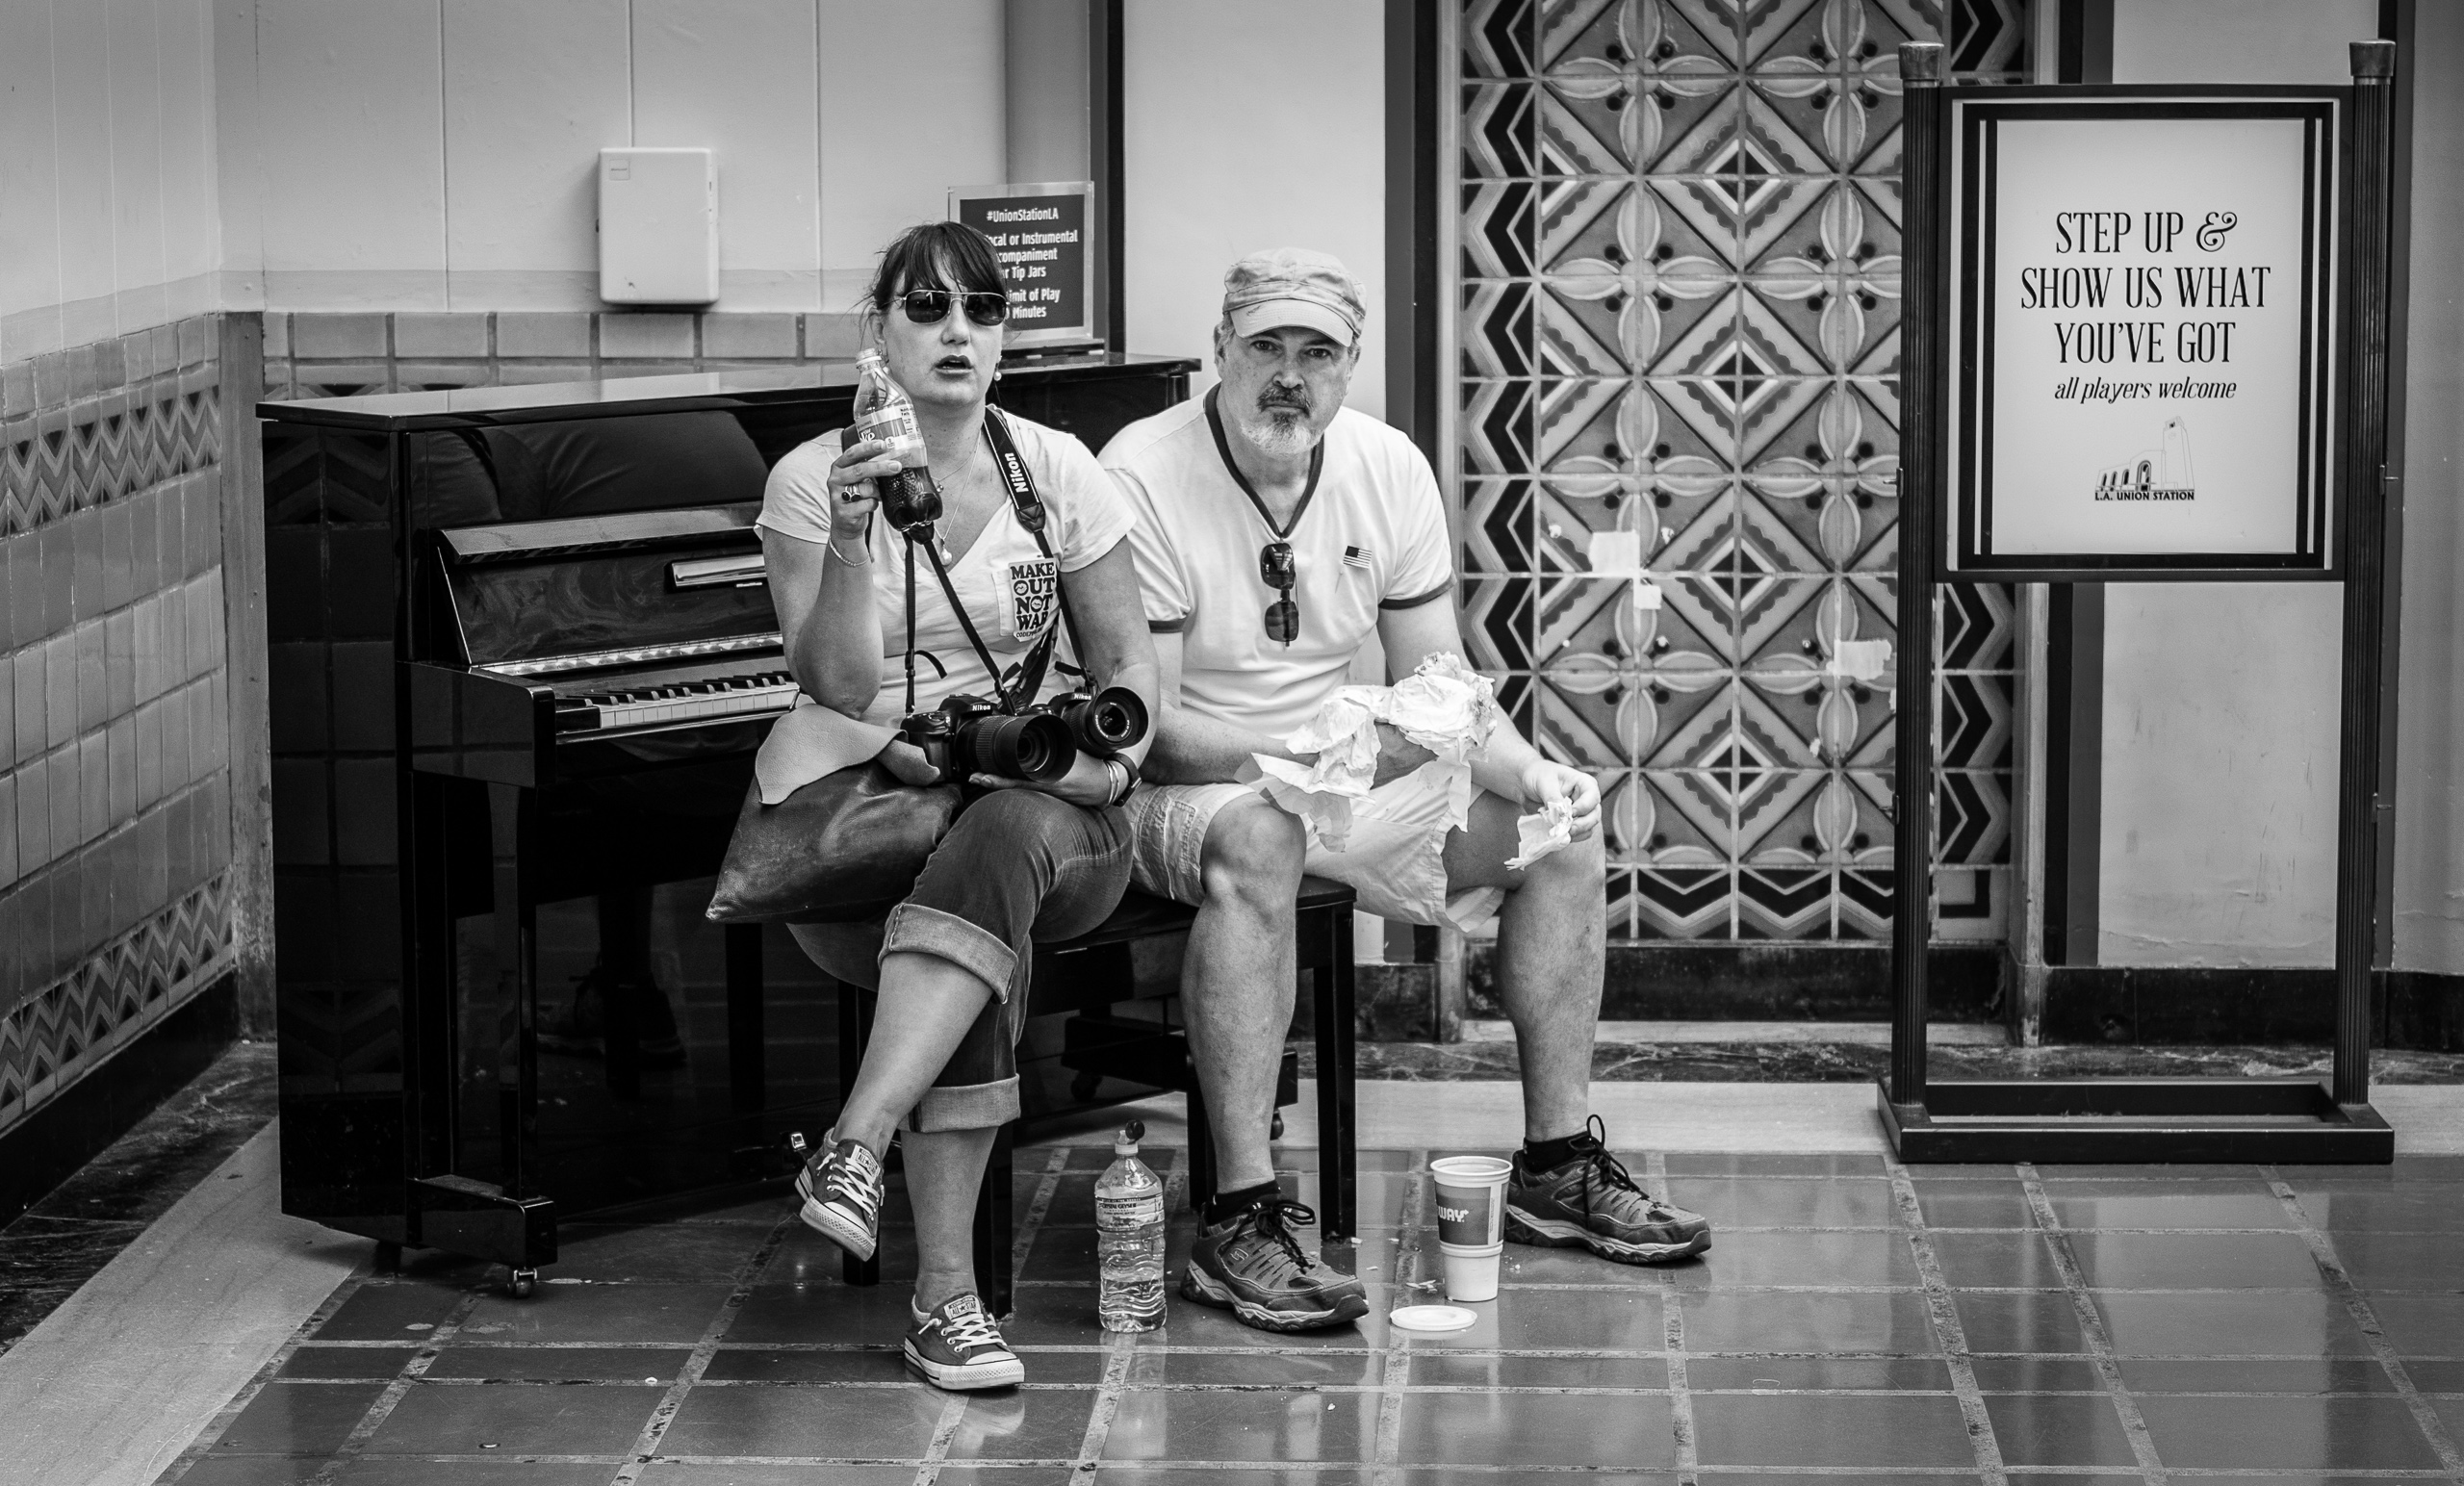 a couple sits on the piano bench at Union Station because they cannot find anyplace else to sit and eat the sandwiches they just bought at the Union Station Subway concession.